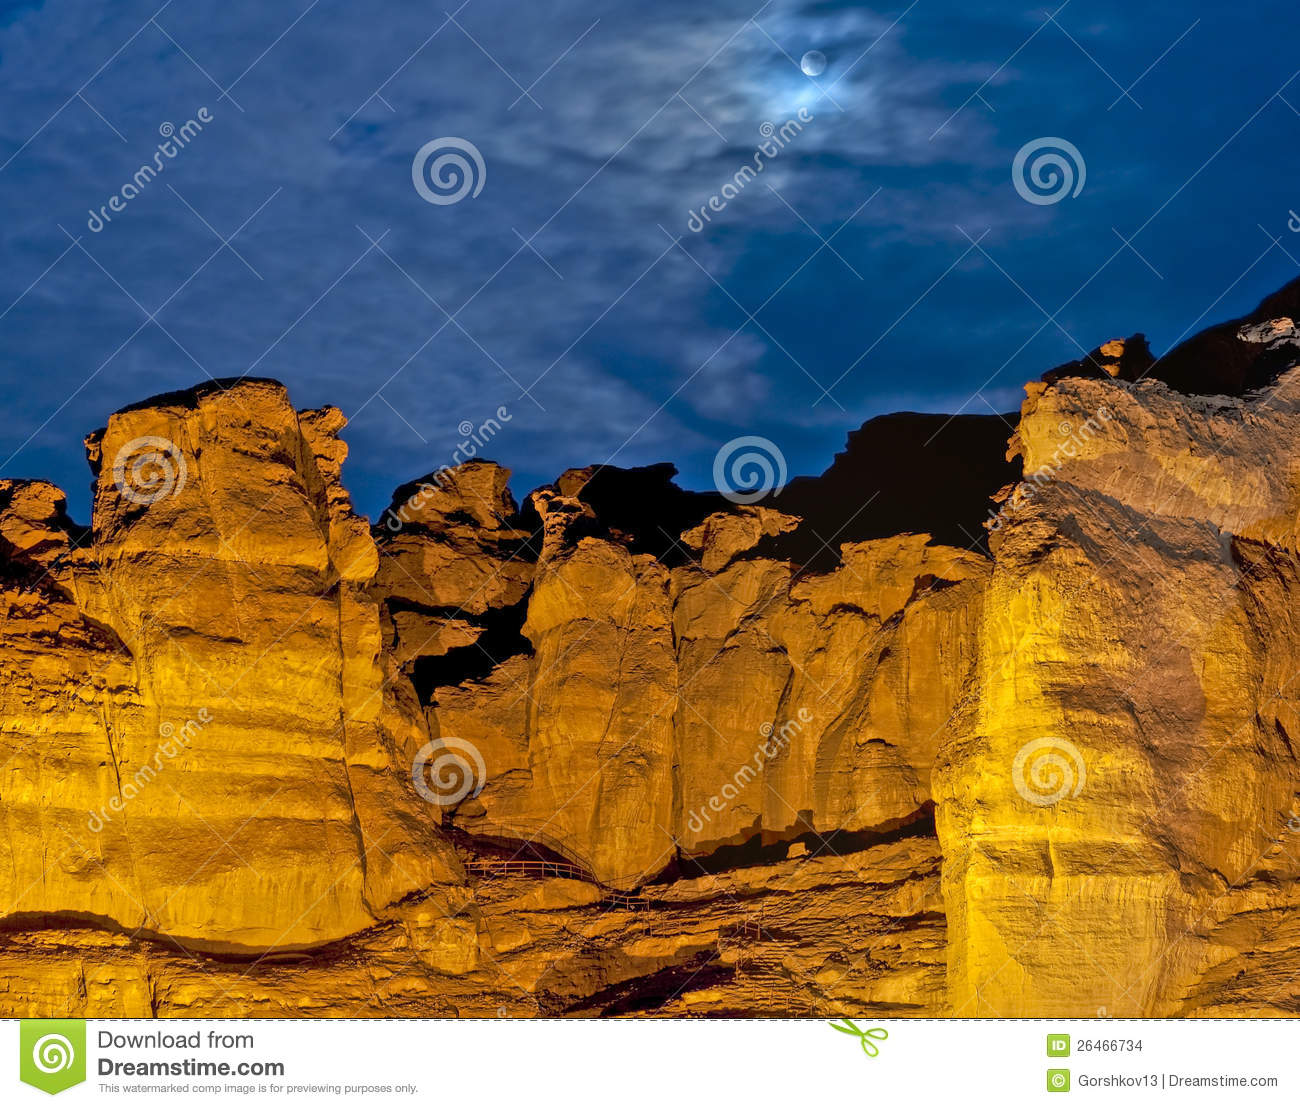 Pillar of Solomon King, Timna park, Israel